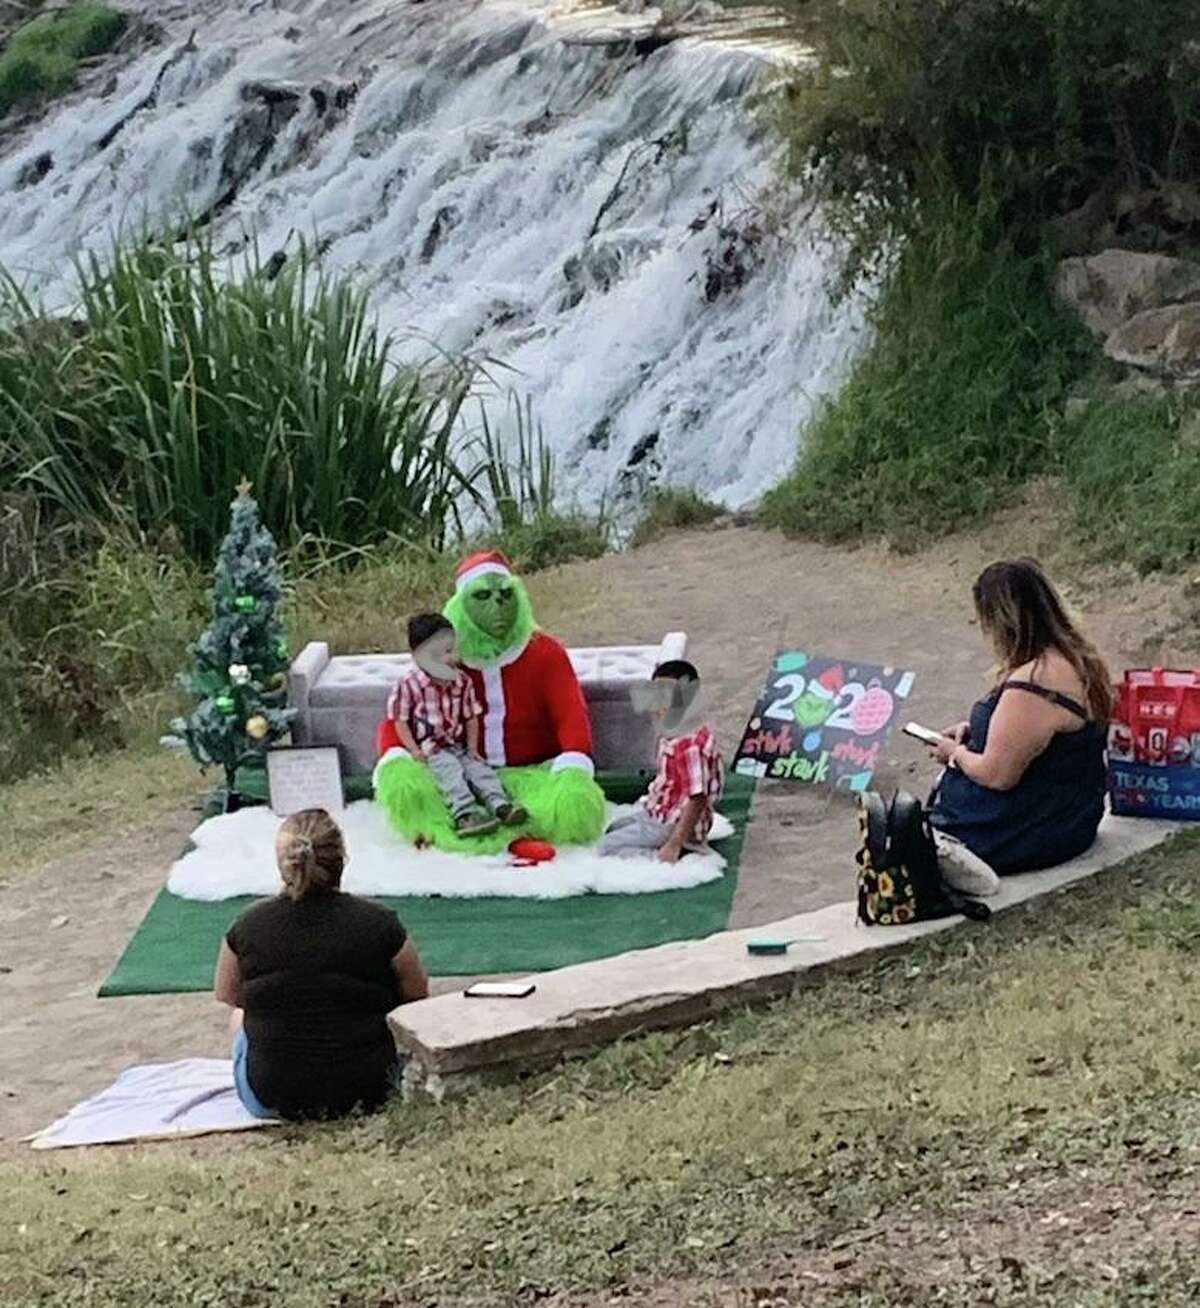 A local Reddit user recently captured a family joining a trendy photoshoot idea that involves having their children take pictures with the popular green character from